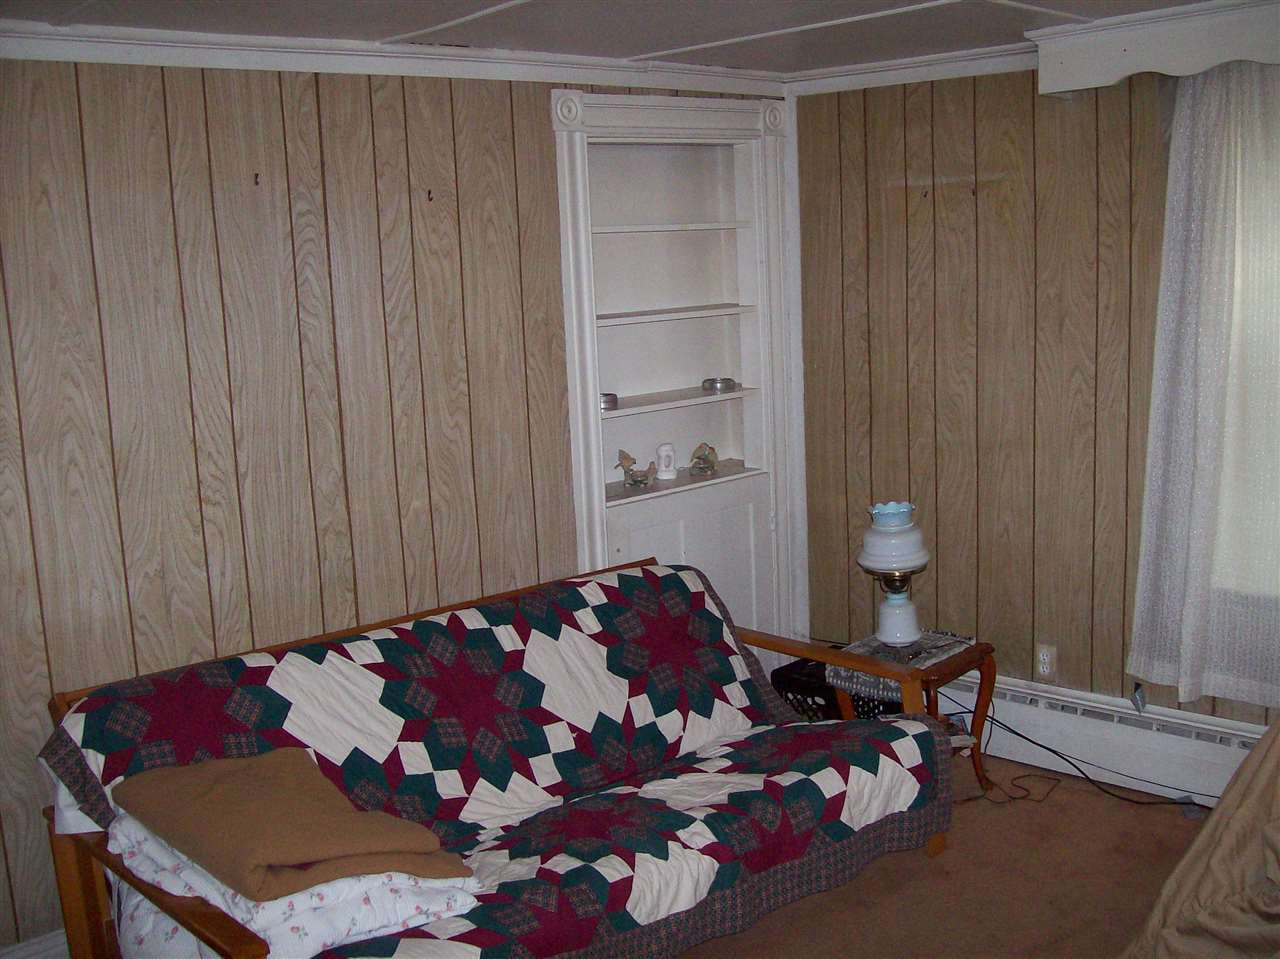 Living Room with Built In Hutch